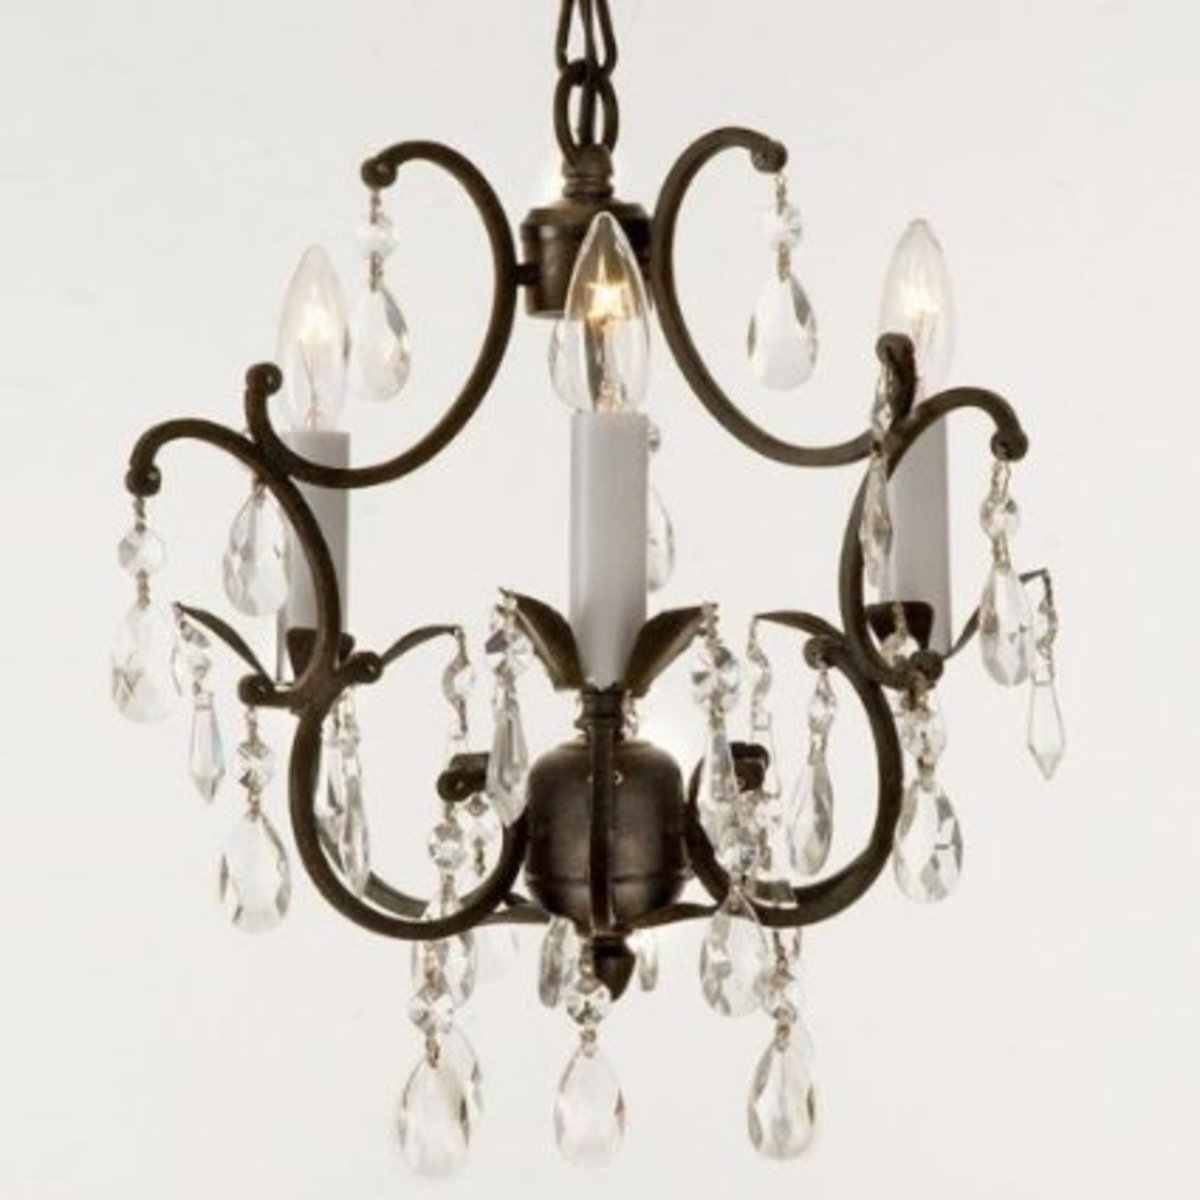 Wrought Iron Bathroom Chandelier with Crystals